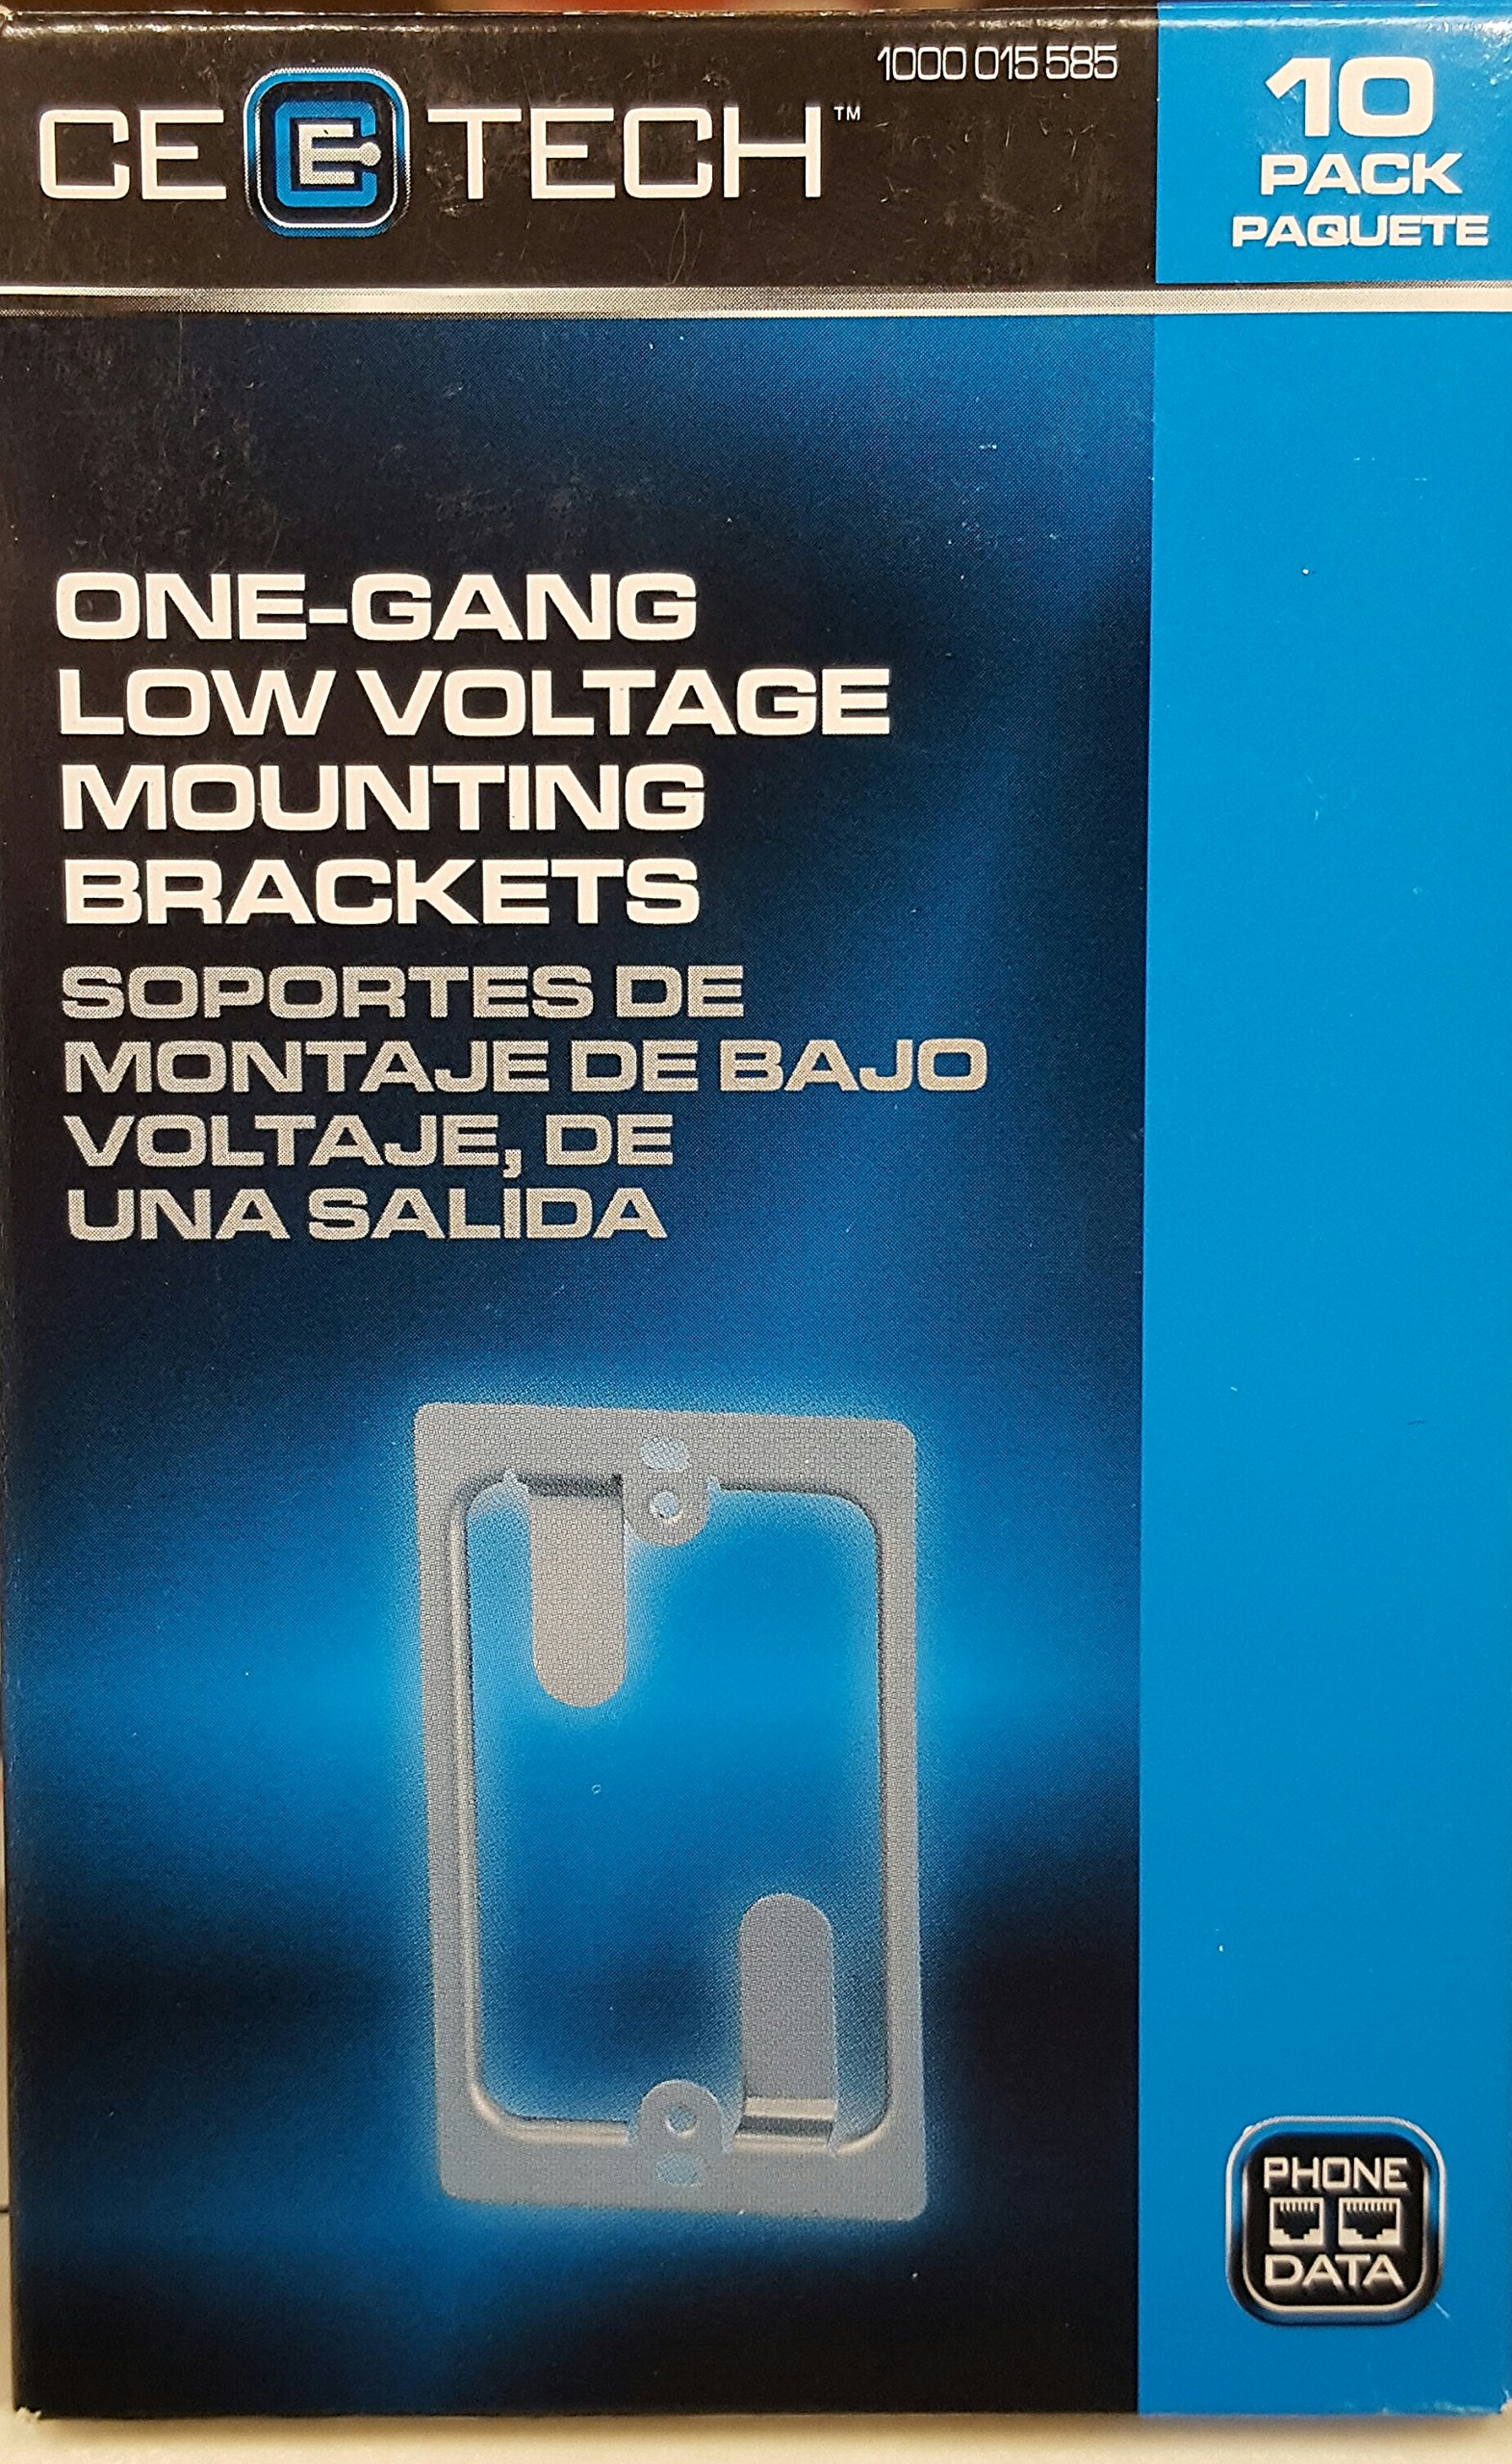 CE TECH One Gang Low Voltage Mounting Bracket - 1 Pack (10 Count)